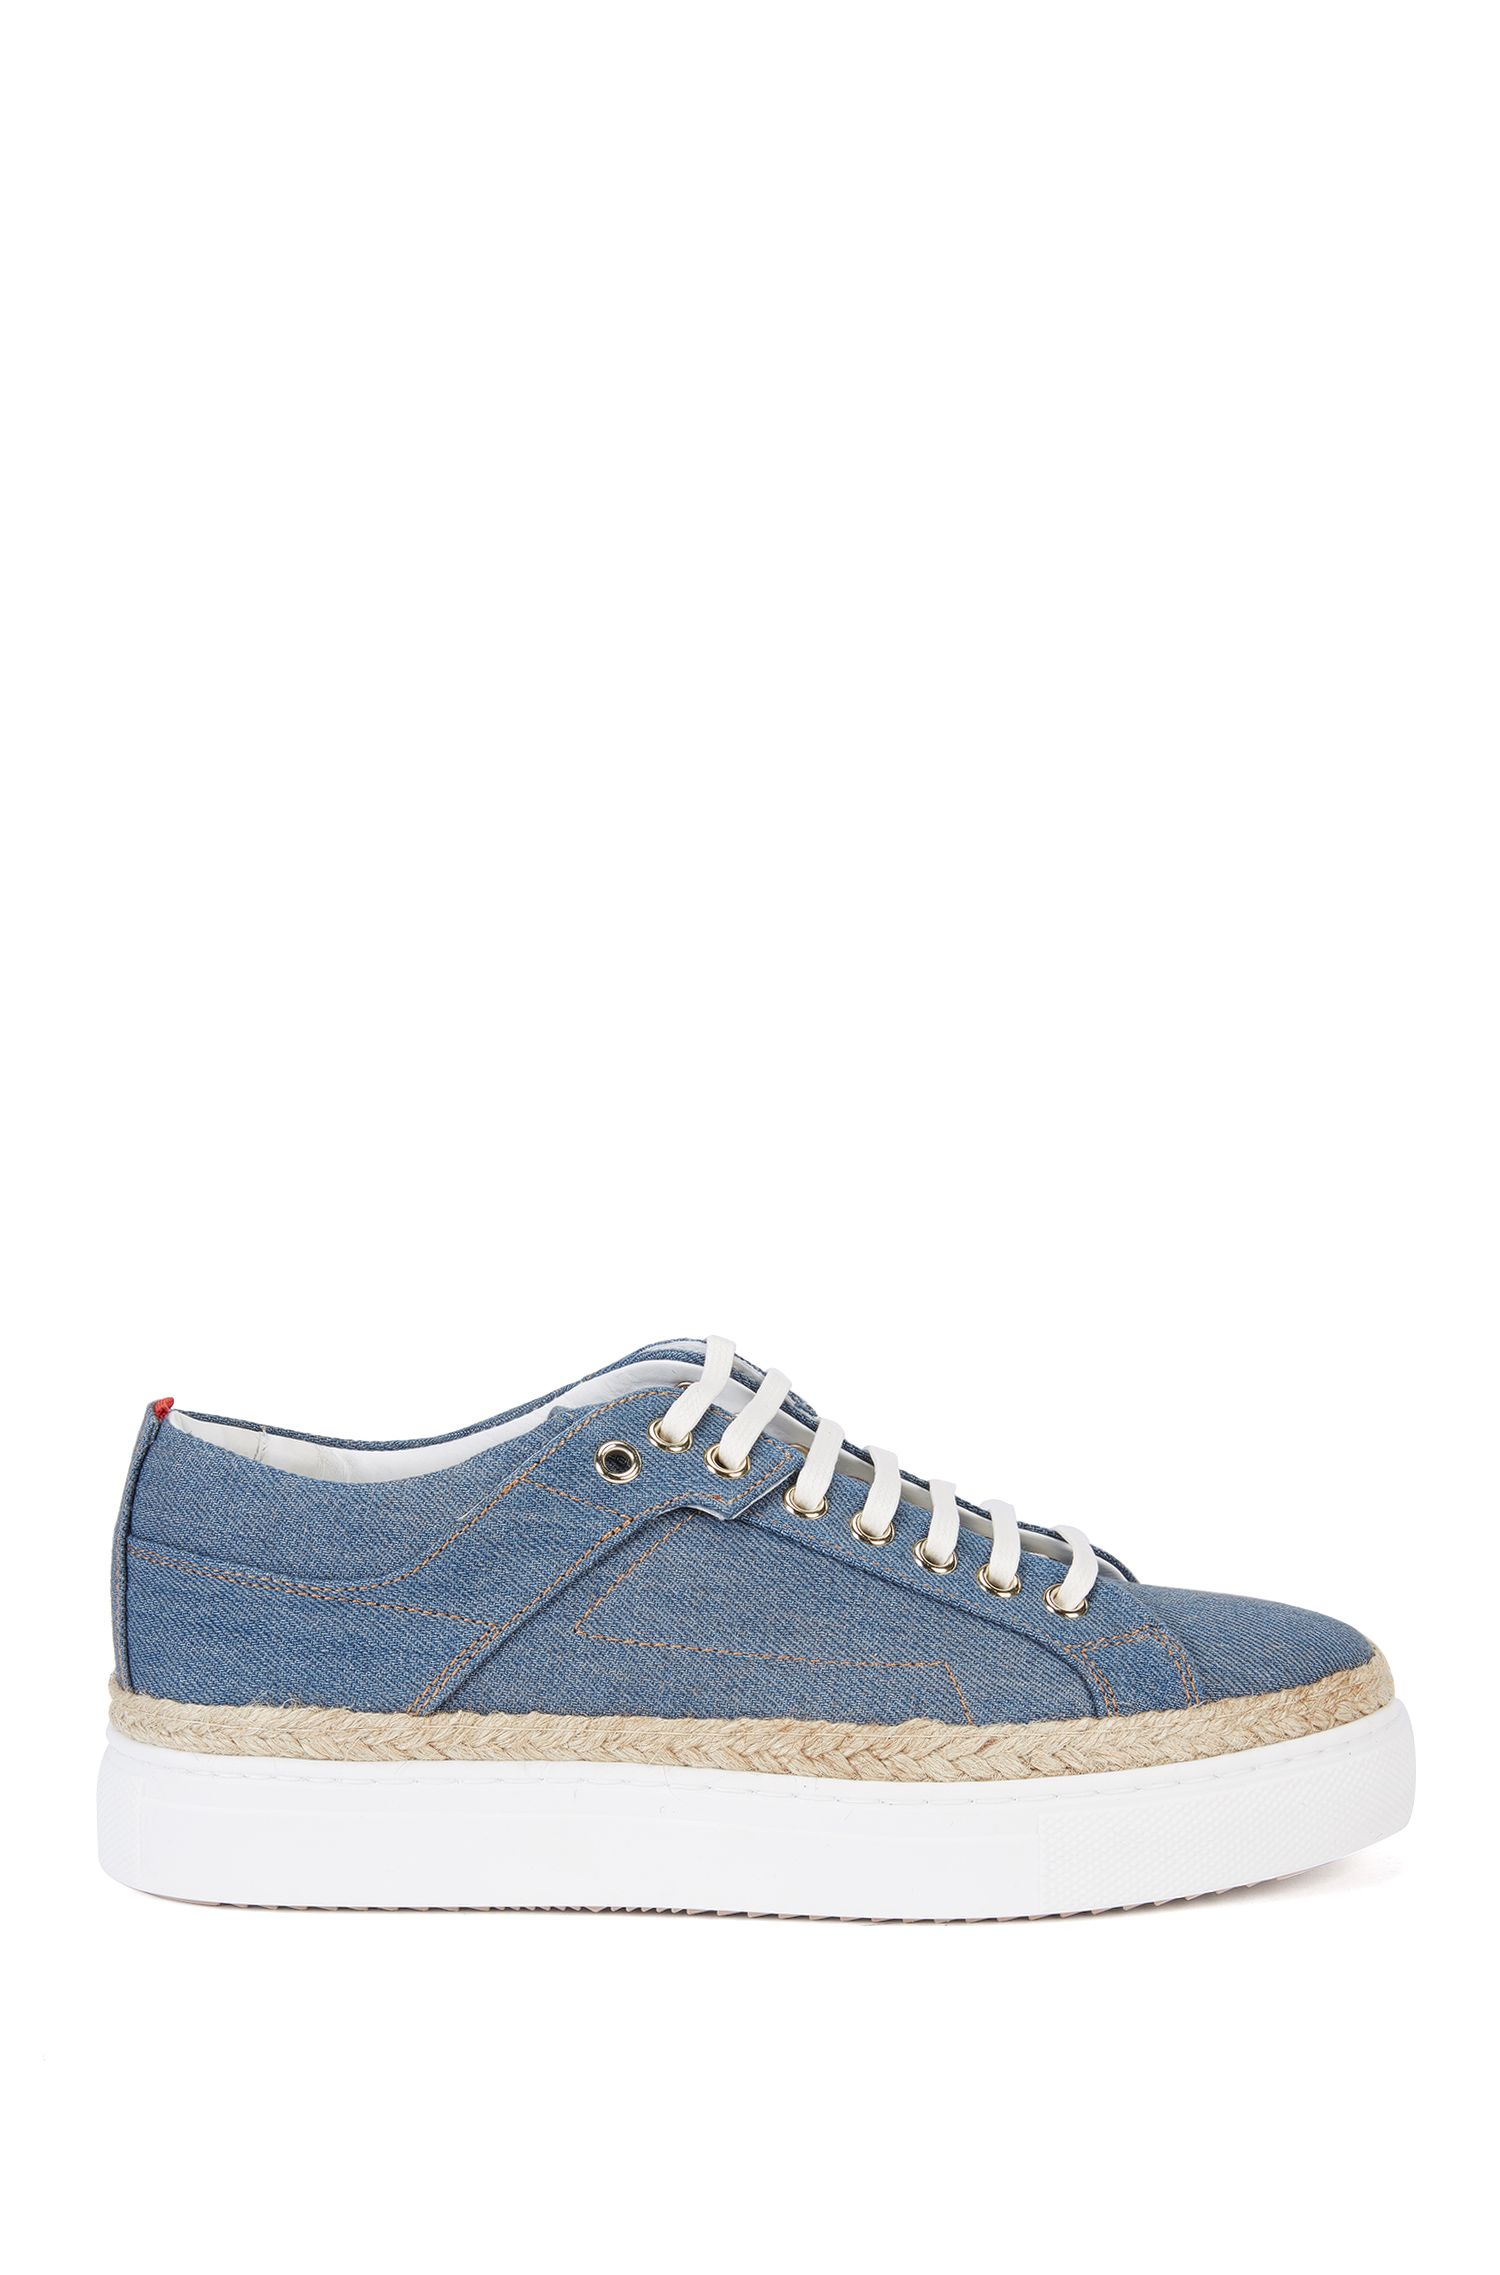 Sneakers in denimlook met plateauzool: 'Connie-D'